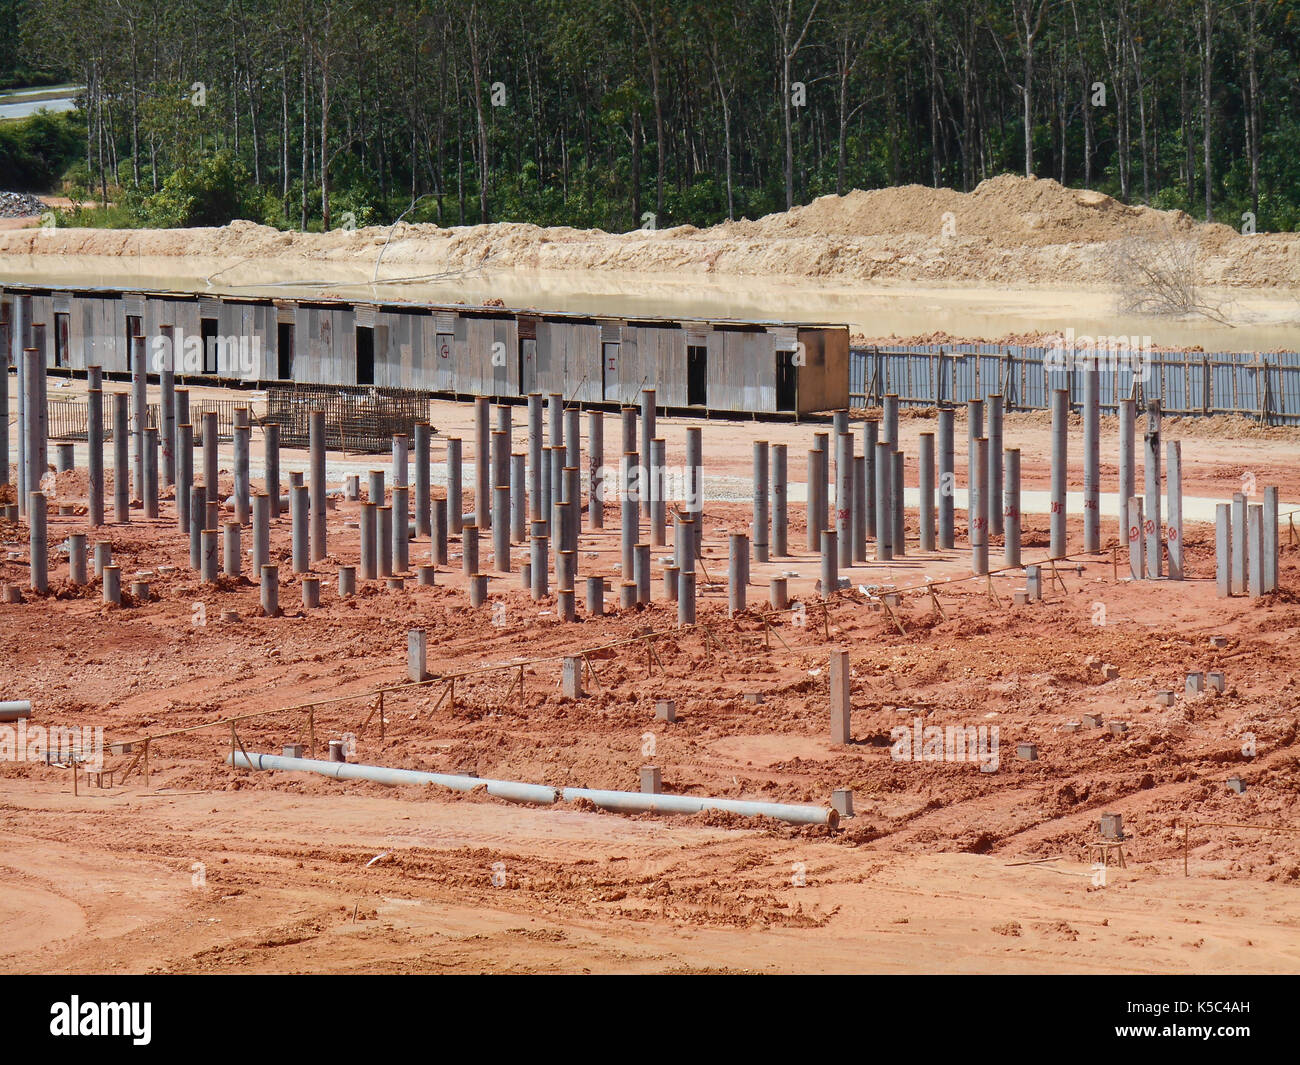 Construction site with piling work is in progress. Piling work is the most popular for the building foundation work. - Stock Image